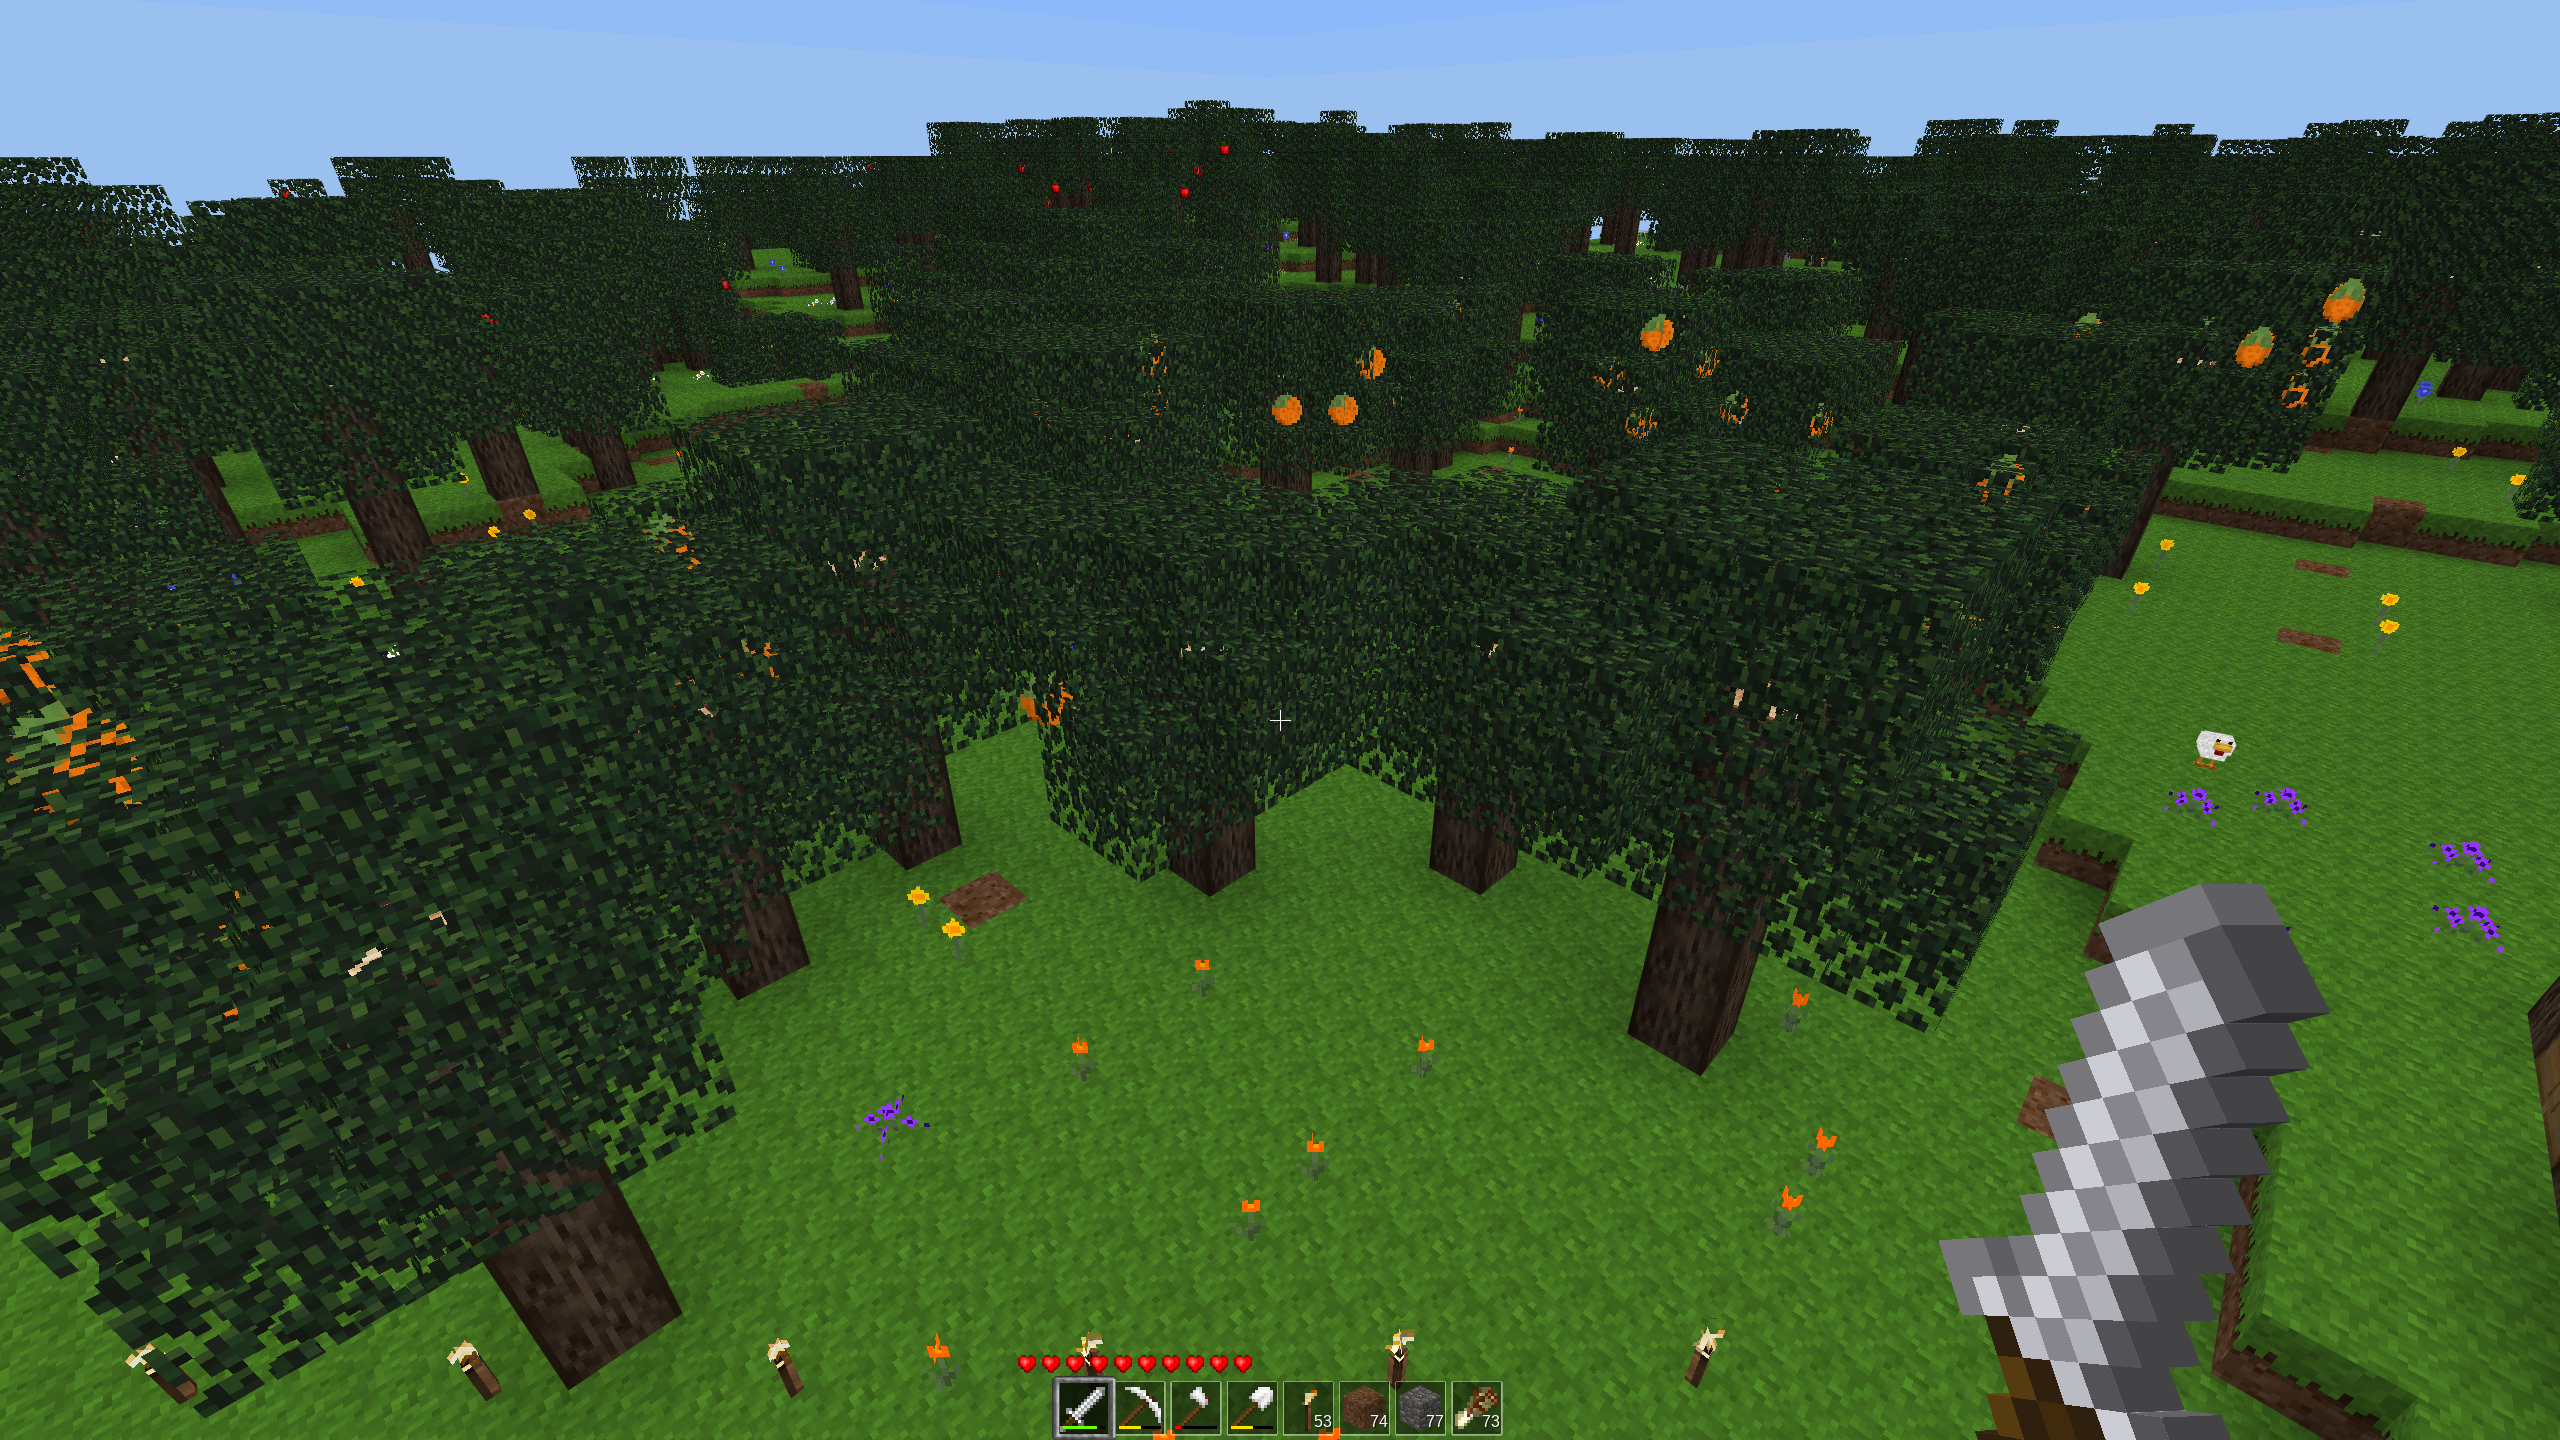 2019-03-31 Tree Growth in Minetest